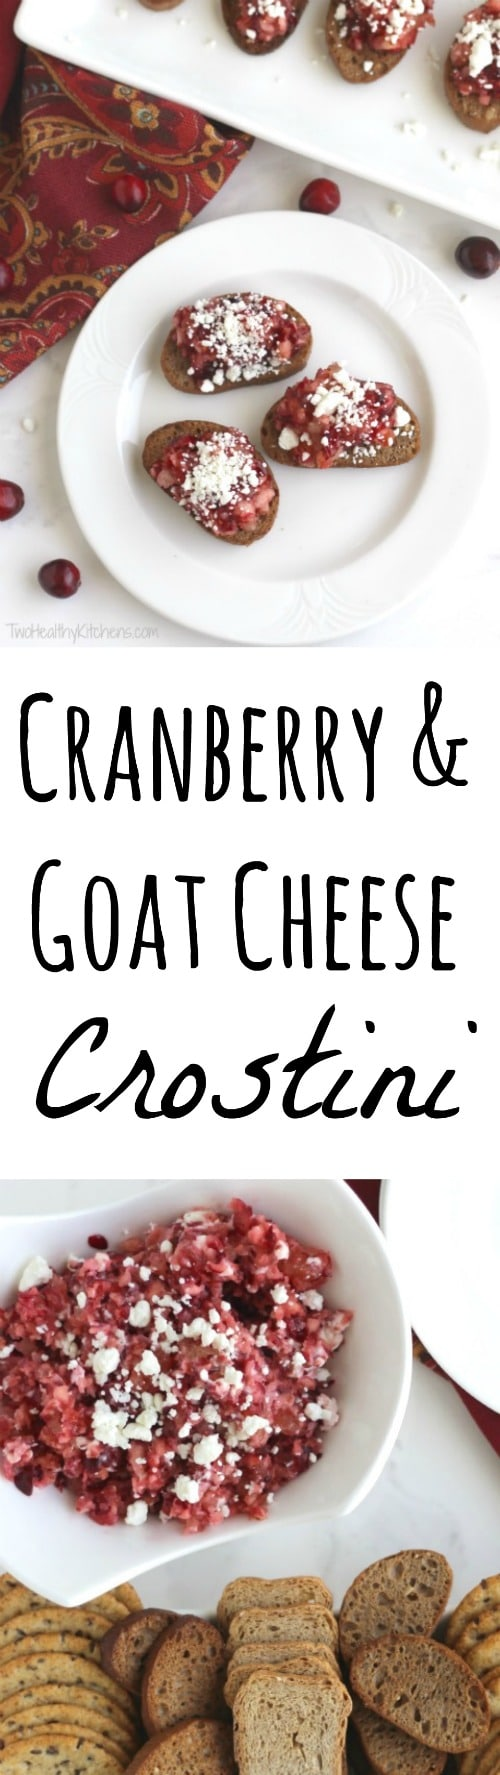 Cranberry and Goat Cheese Crostini Recipe {www.TwoHealthyKitchens.com}